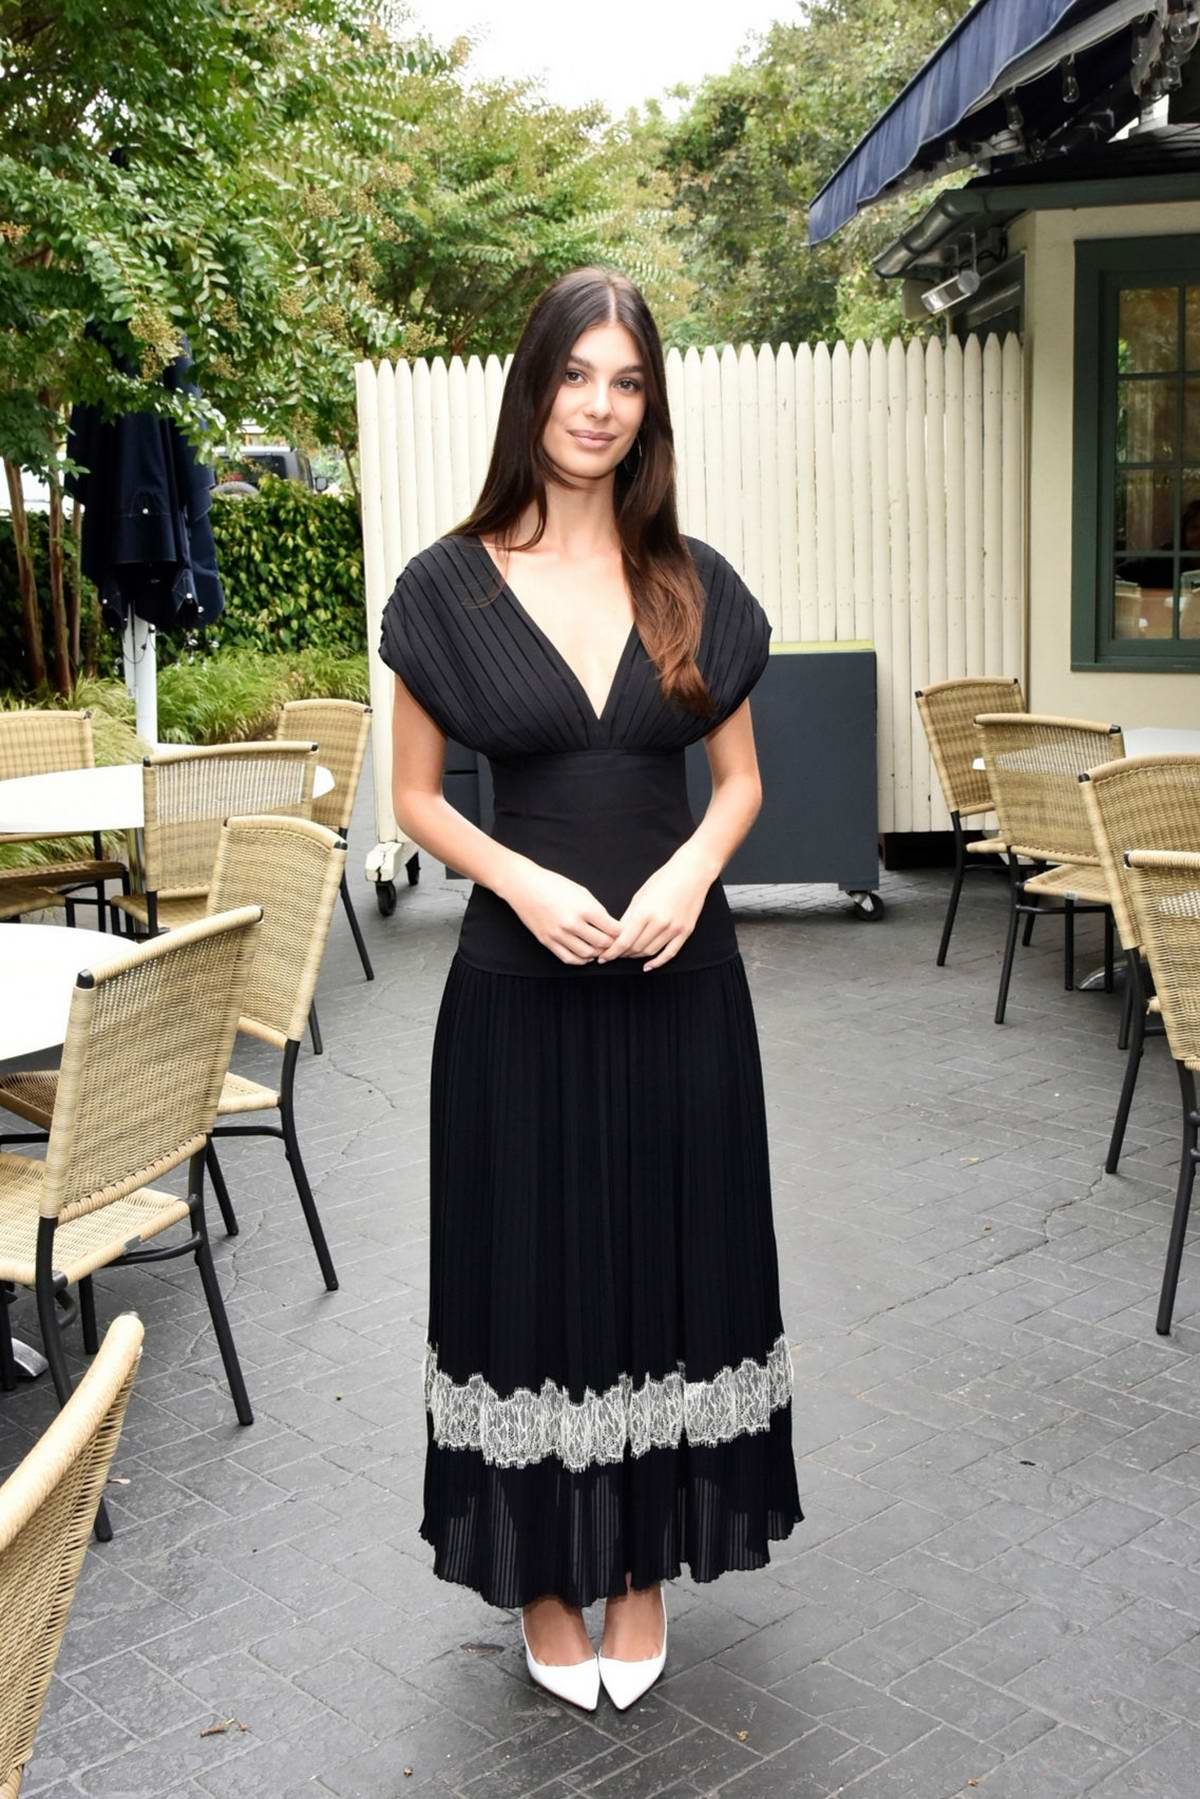 Camila Morrone attends the Breakthrough Artists Brunch during the 2019 Hamptons International Film Festival in The Hamptons, New York